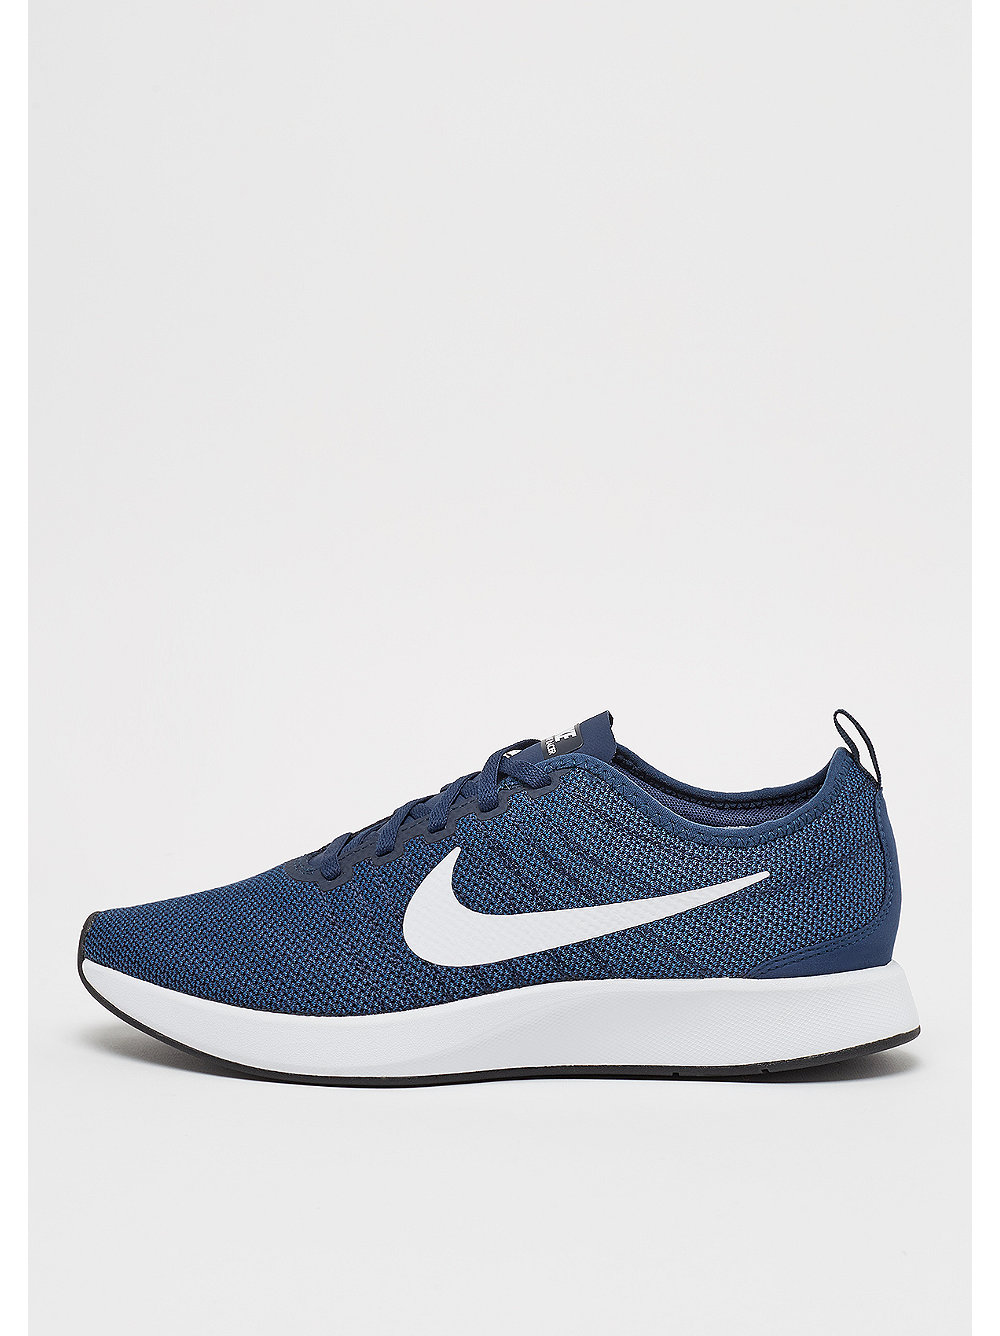 NIKE RUNNING dualtone RACER Midnight Navy White Coastal Blue